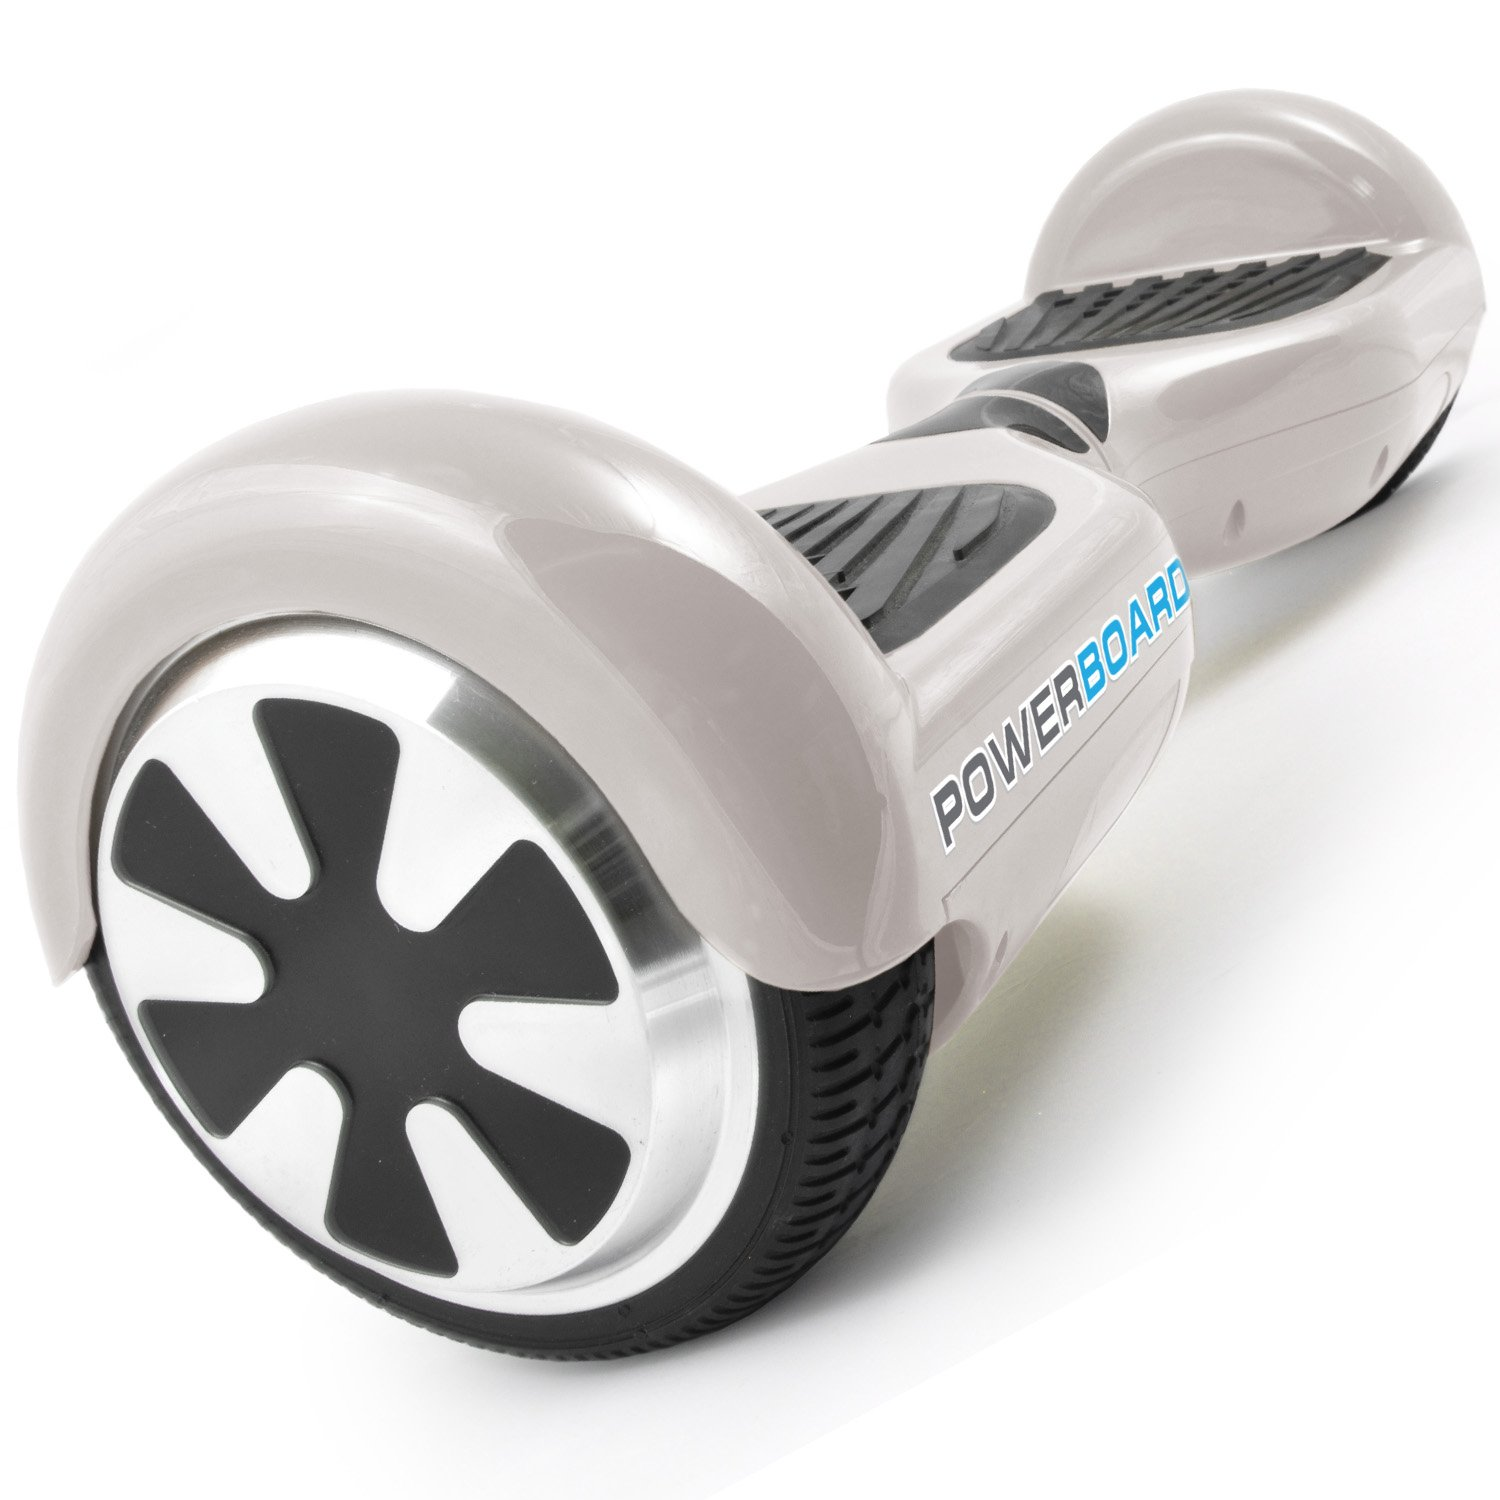 Powerboard by HOVERBOARD electric self balancing scooter